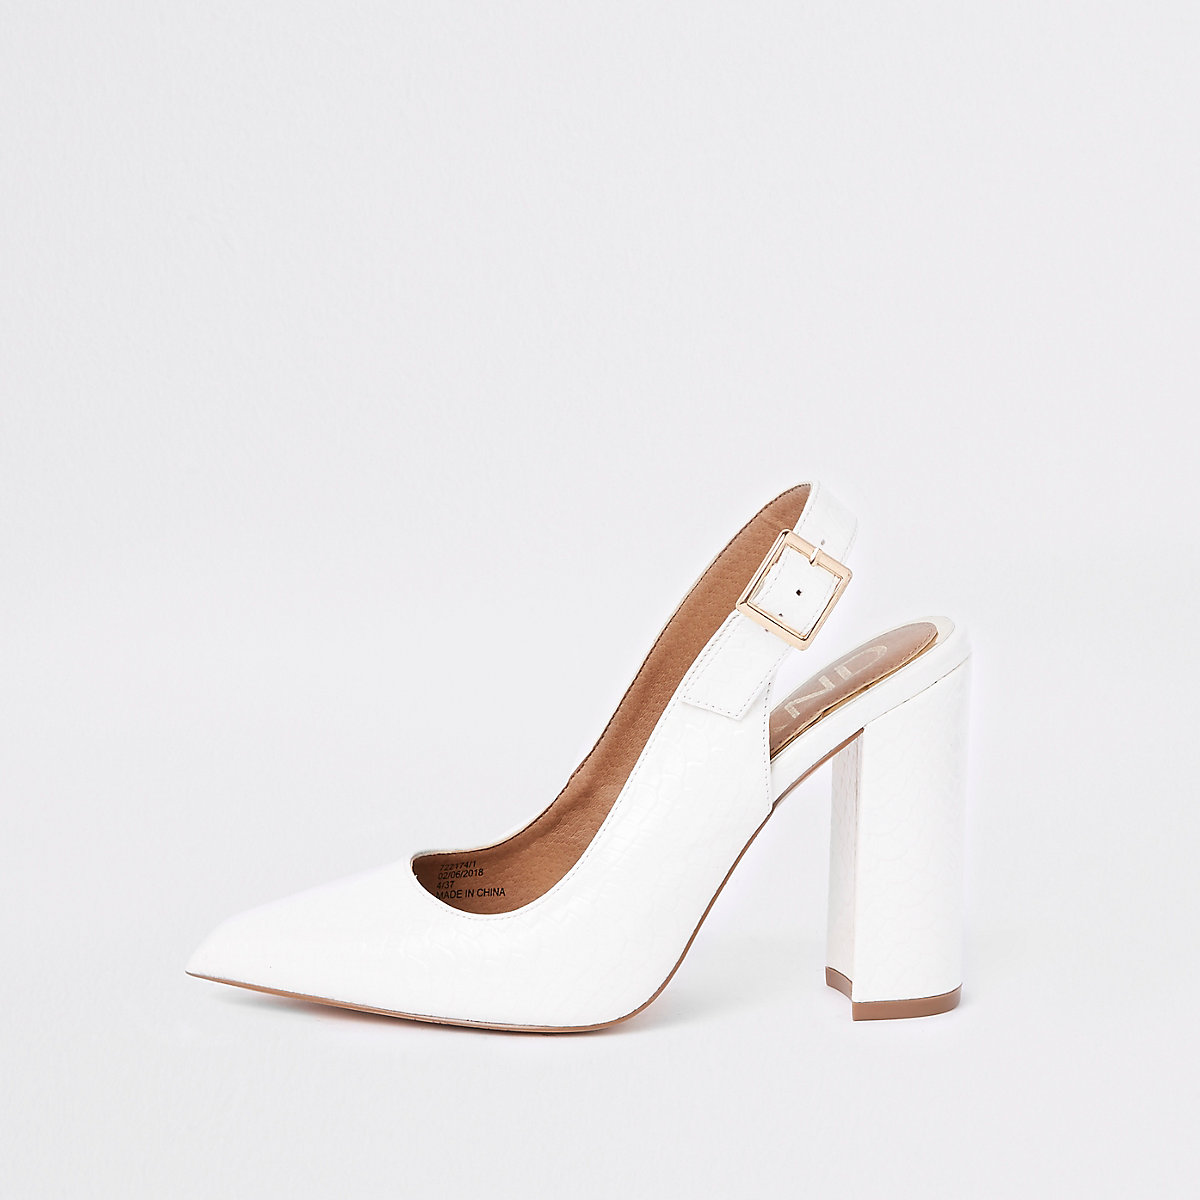 White croc embossed sling back court shoes